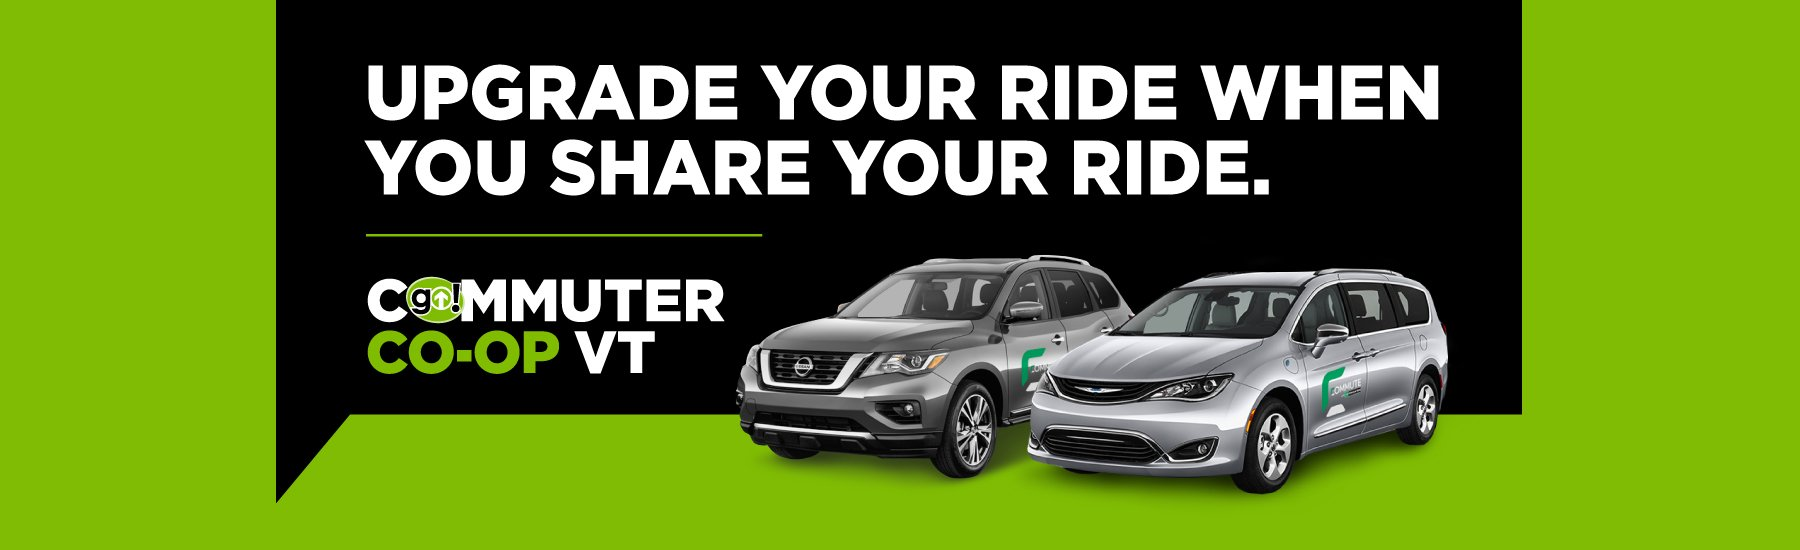 Upgrade your ride when you share your ride